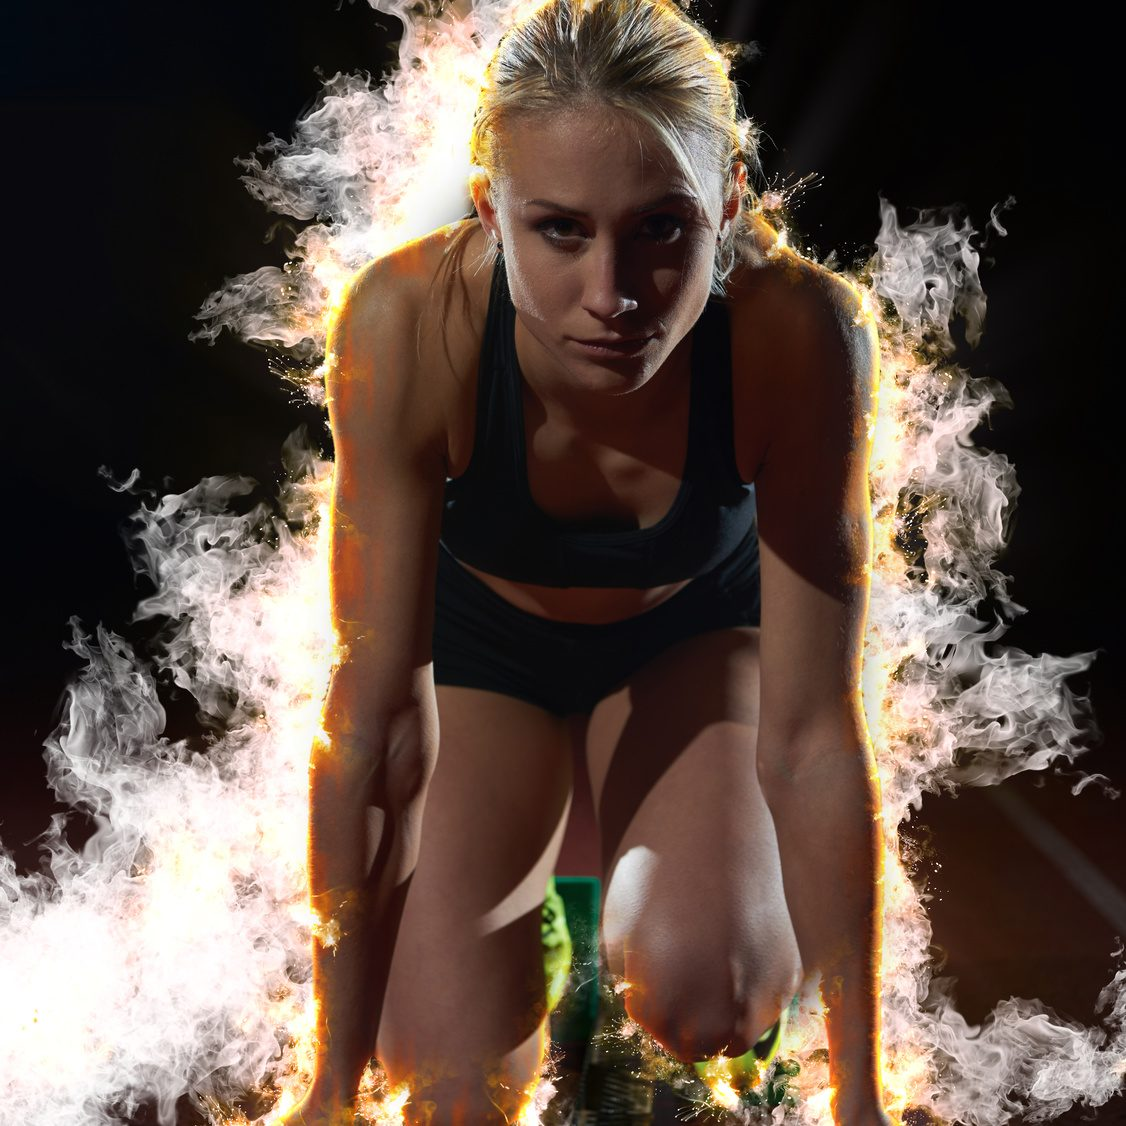 design with fire, smoke  and burm  of woman  sprinter leaving starting blocks on the athletic  track. Side view. exploding start